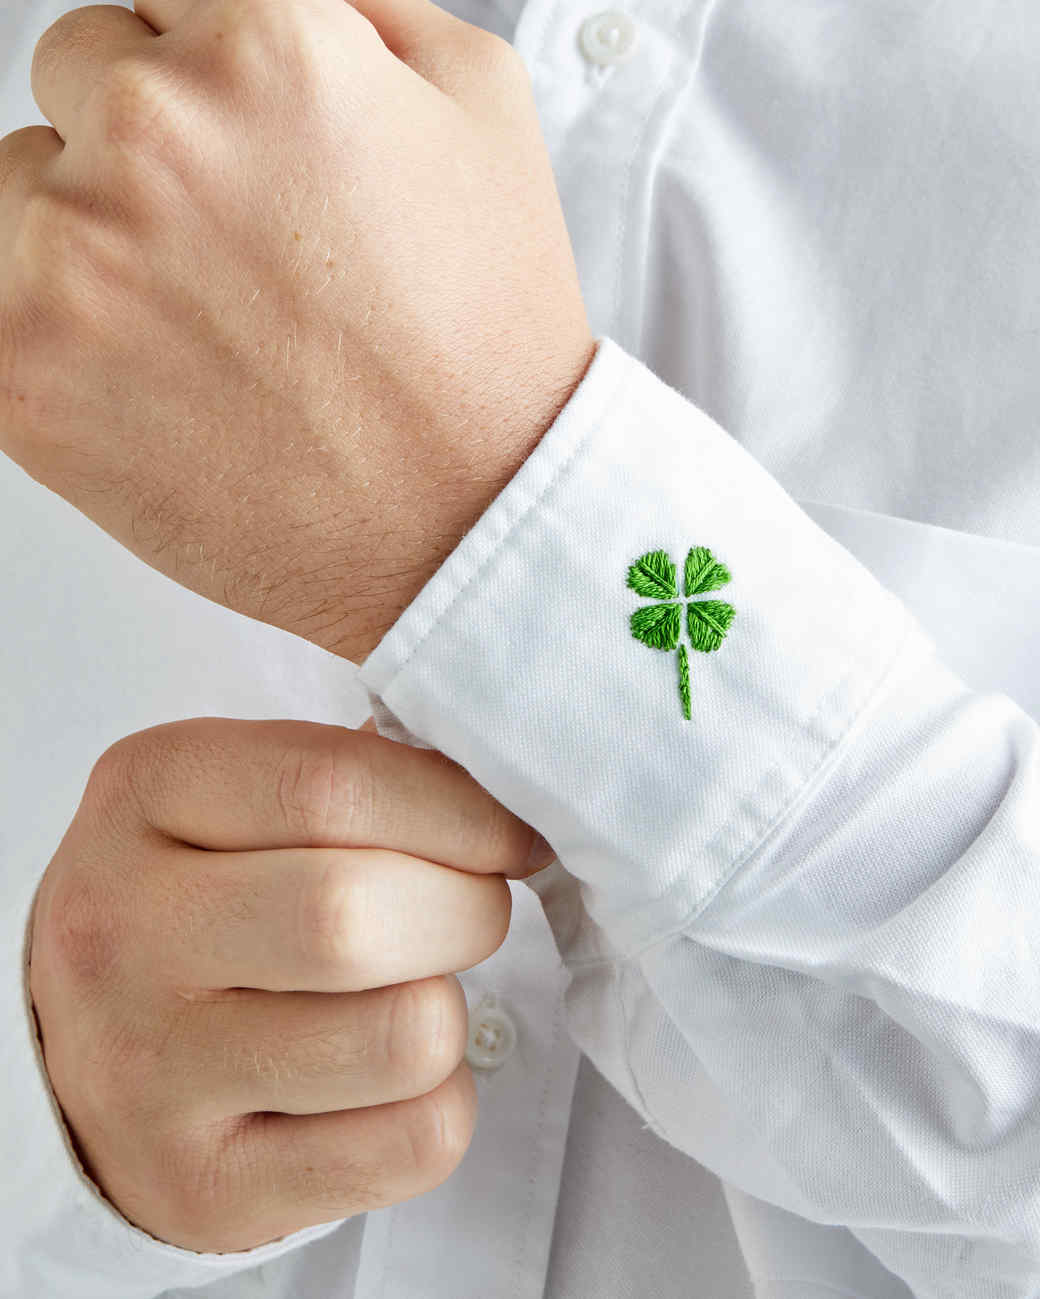 embroidered four-leaf clover on a man's shirt cuff